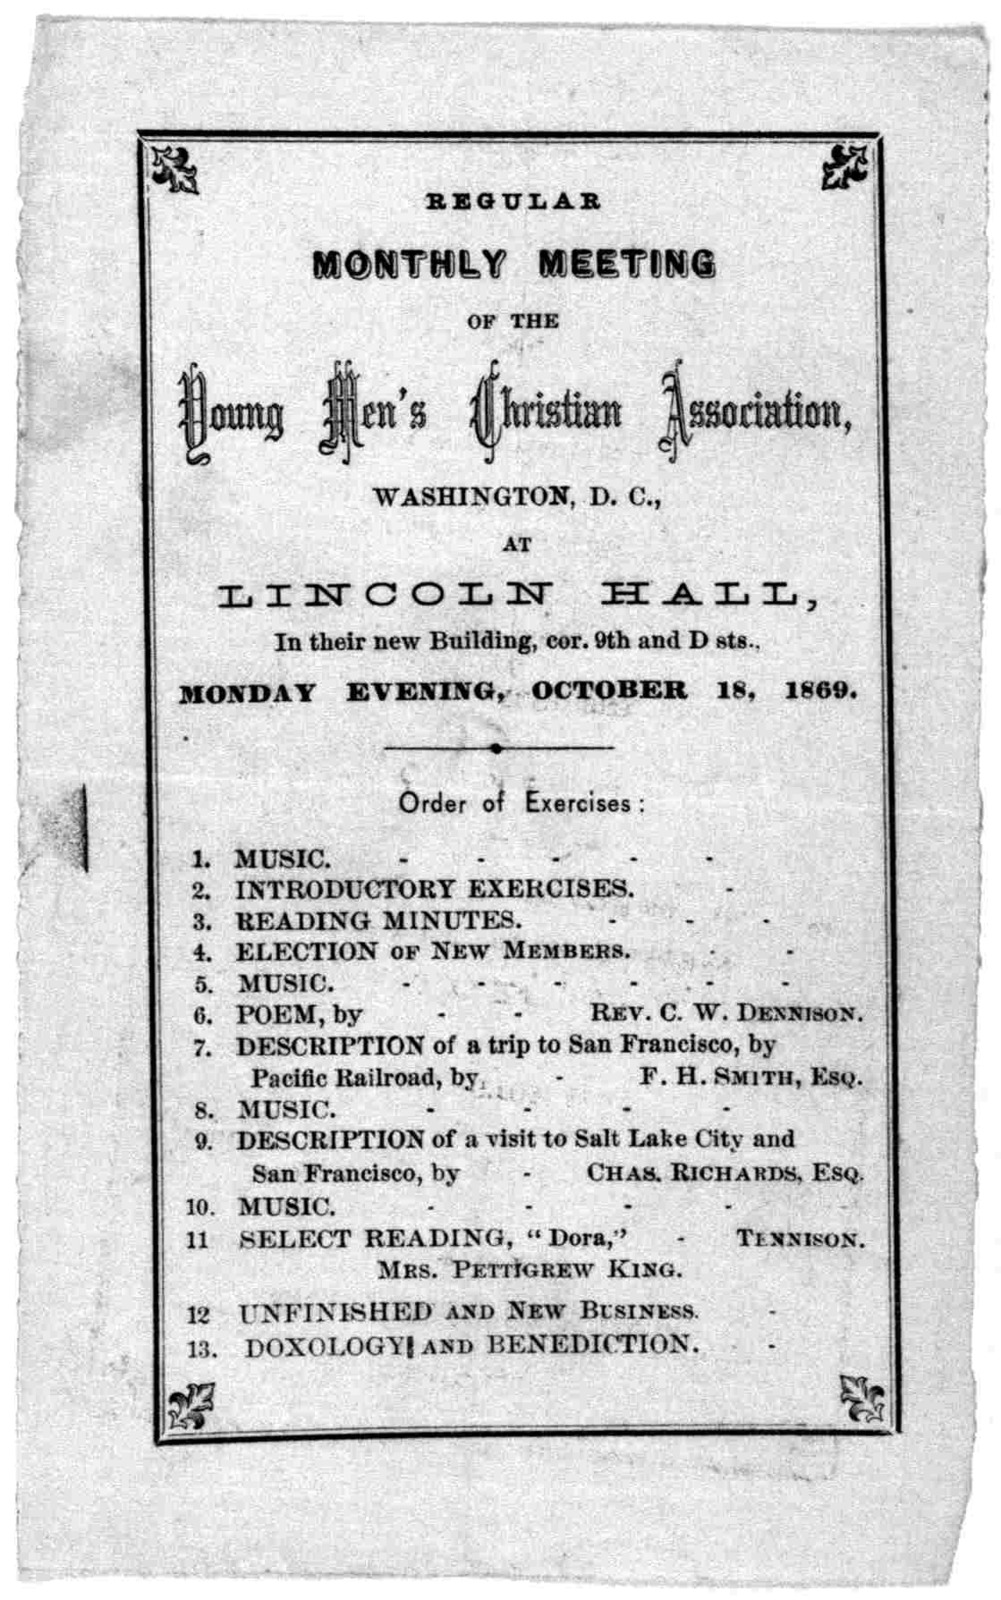 Regular monthly meeting of the Young men's Christian association, Washington, D. C., at Lincoln Hall, in their new building, cor. 9th and D sts., Monday evening, October 18, 1869. Order of exercises. [Washington, D. C.1869].